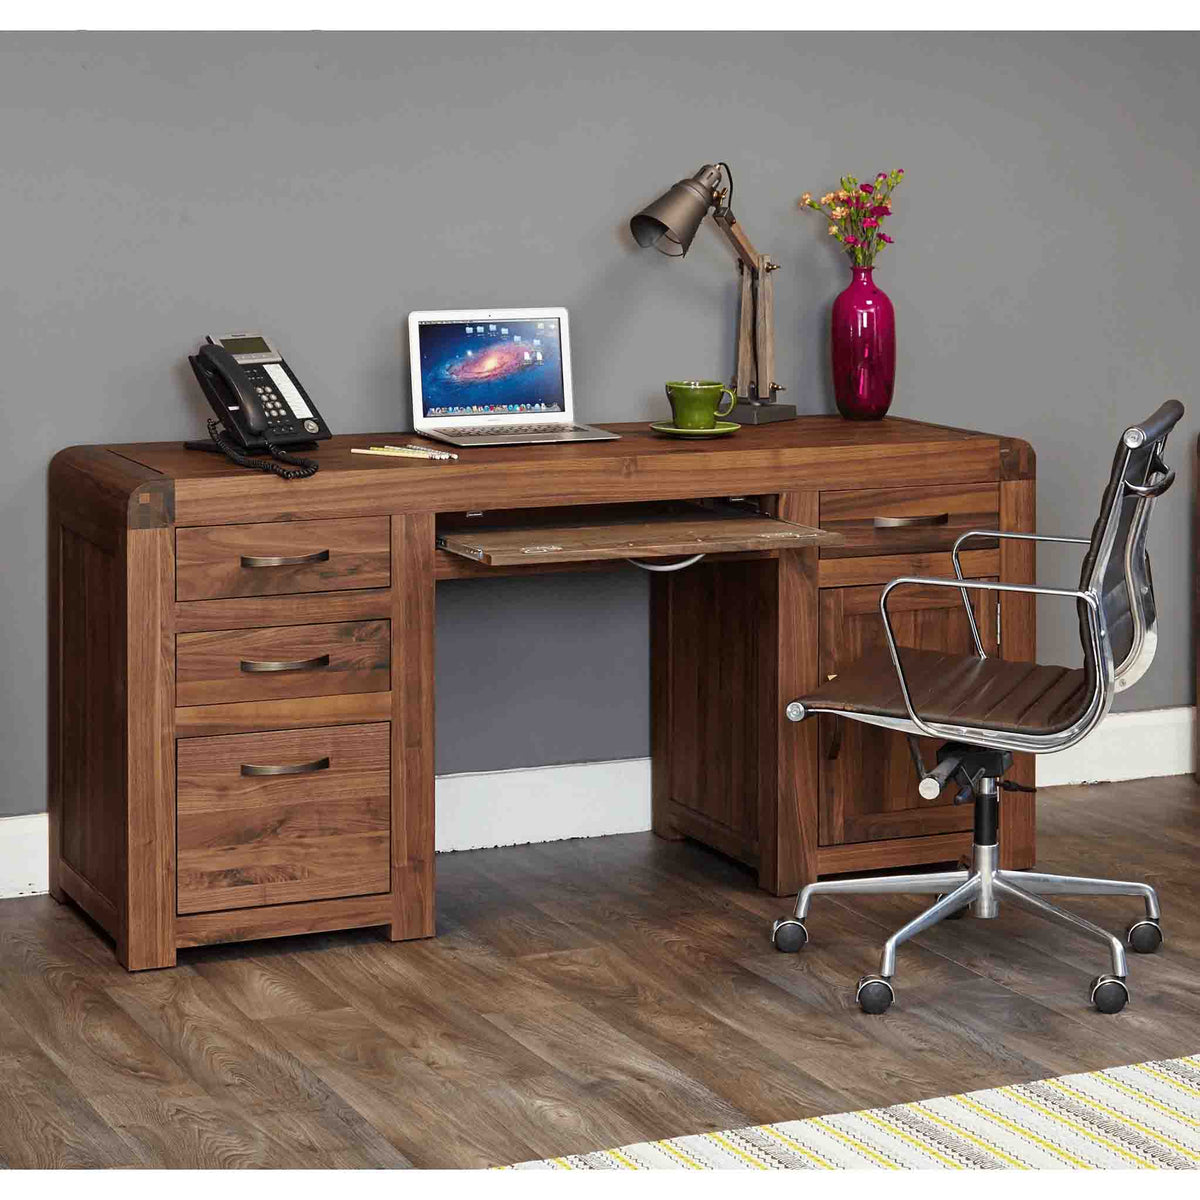 Pull out drawer view of The Salem Walnut Large Wooden Office Desk